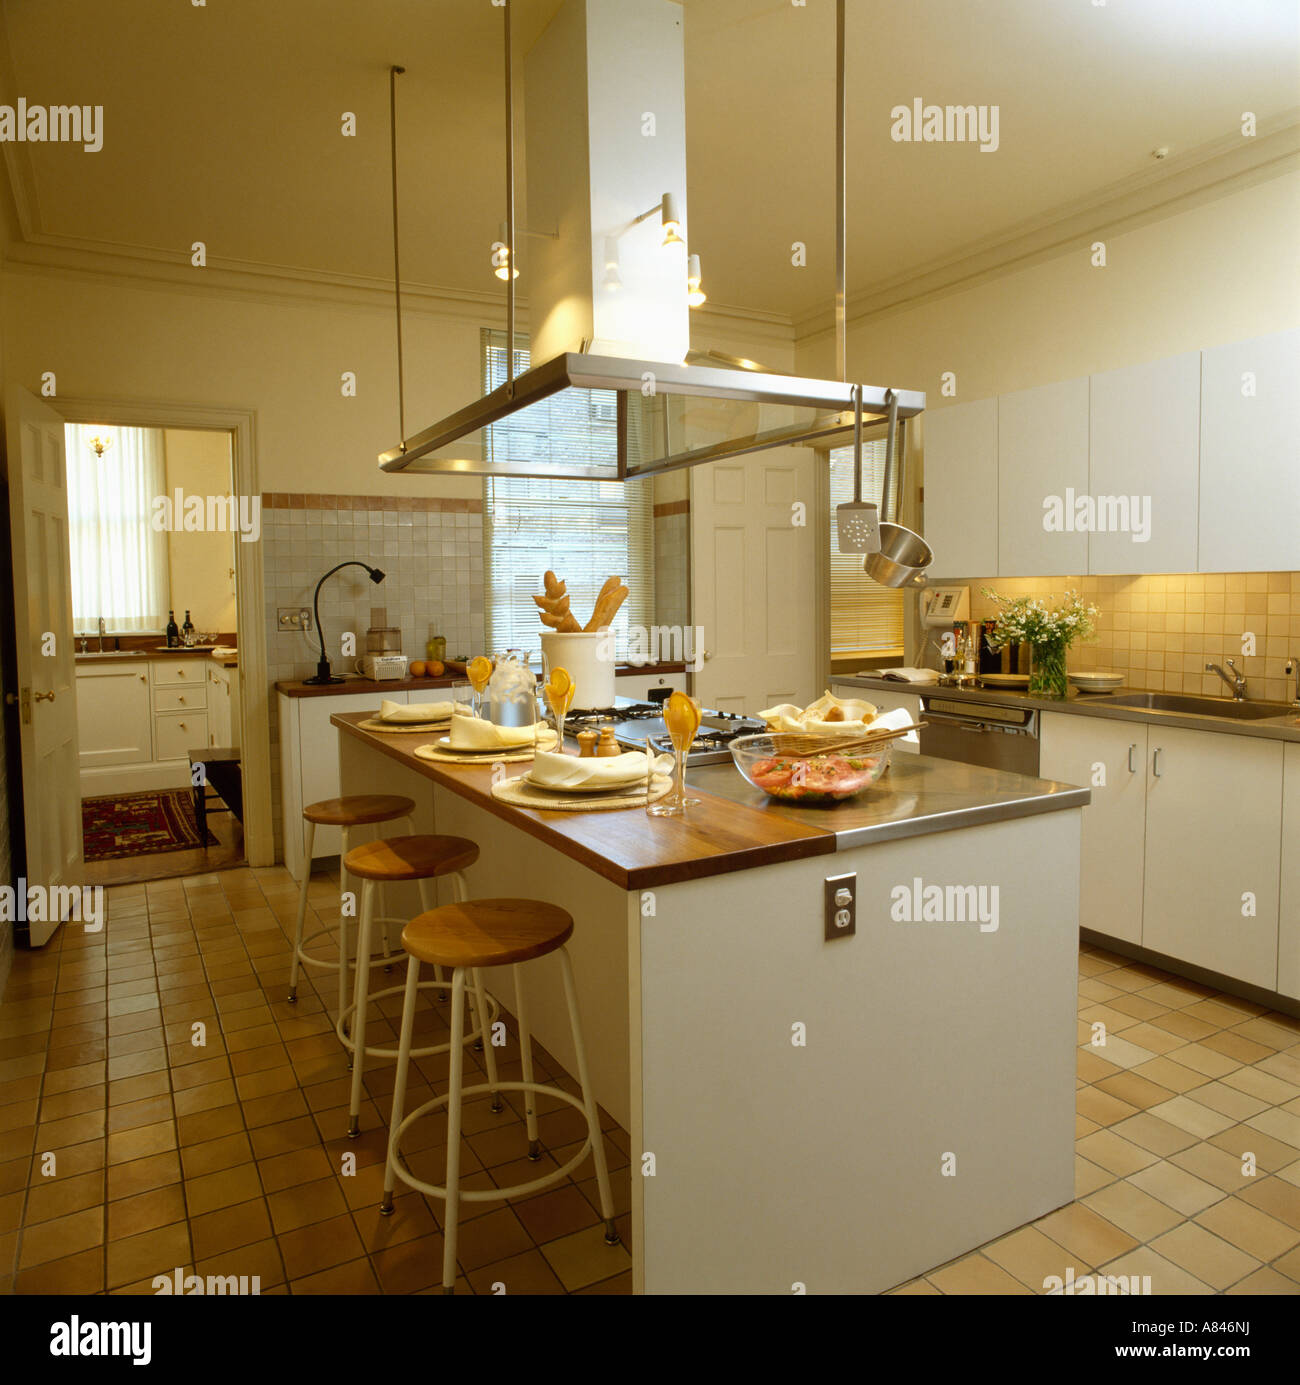 Large Extractor Fan Over Island Unit In Modern White Kitchen With Stock Photo Alamy